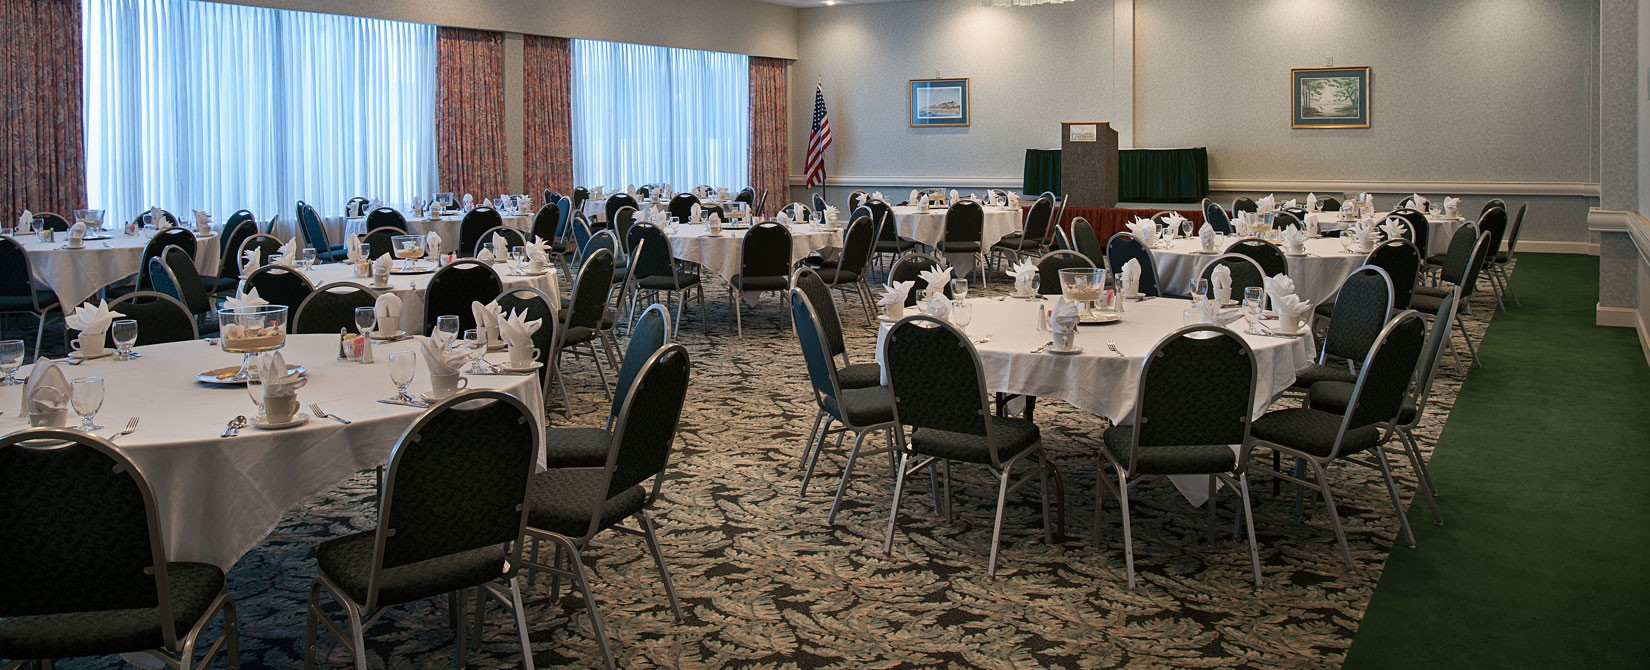 Landmark Resort meeting or conference room with tables and podium set up